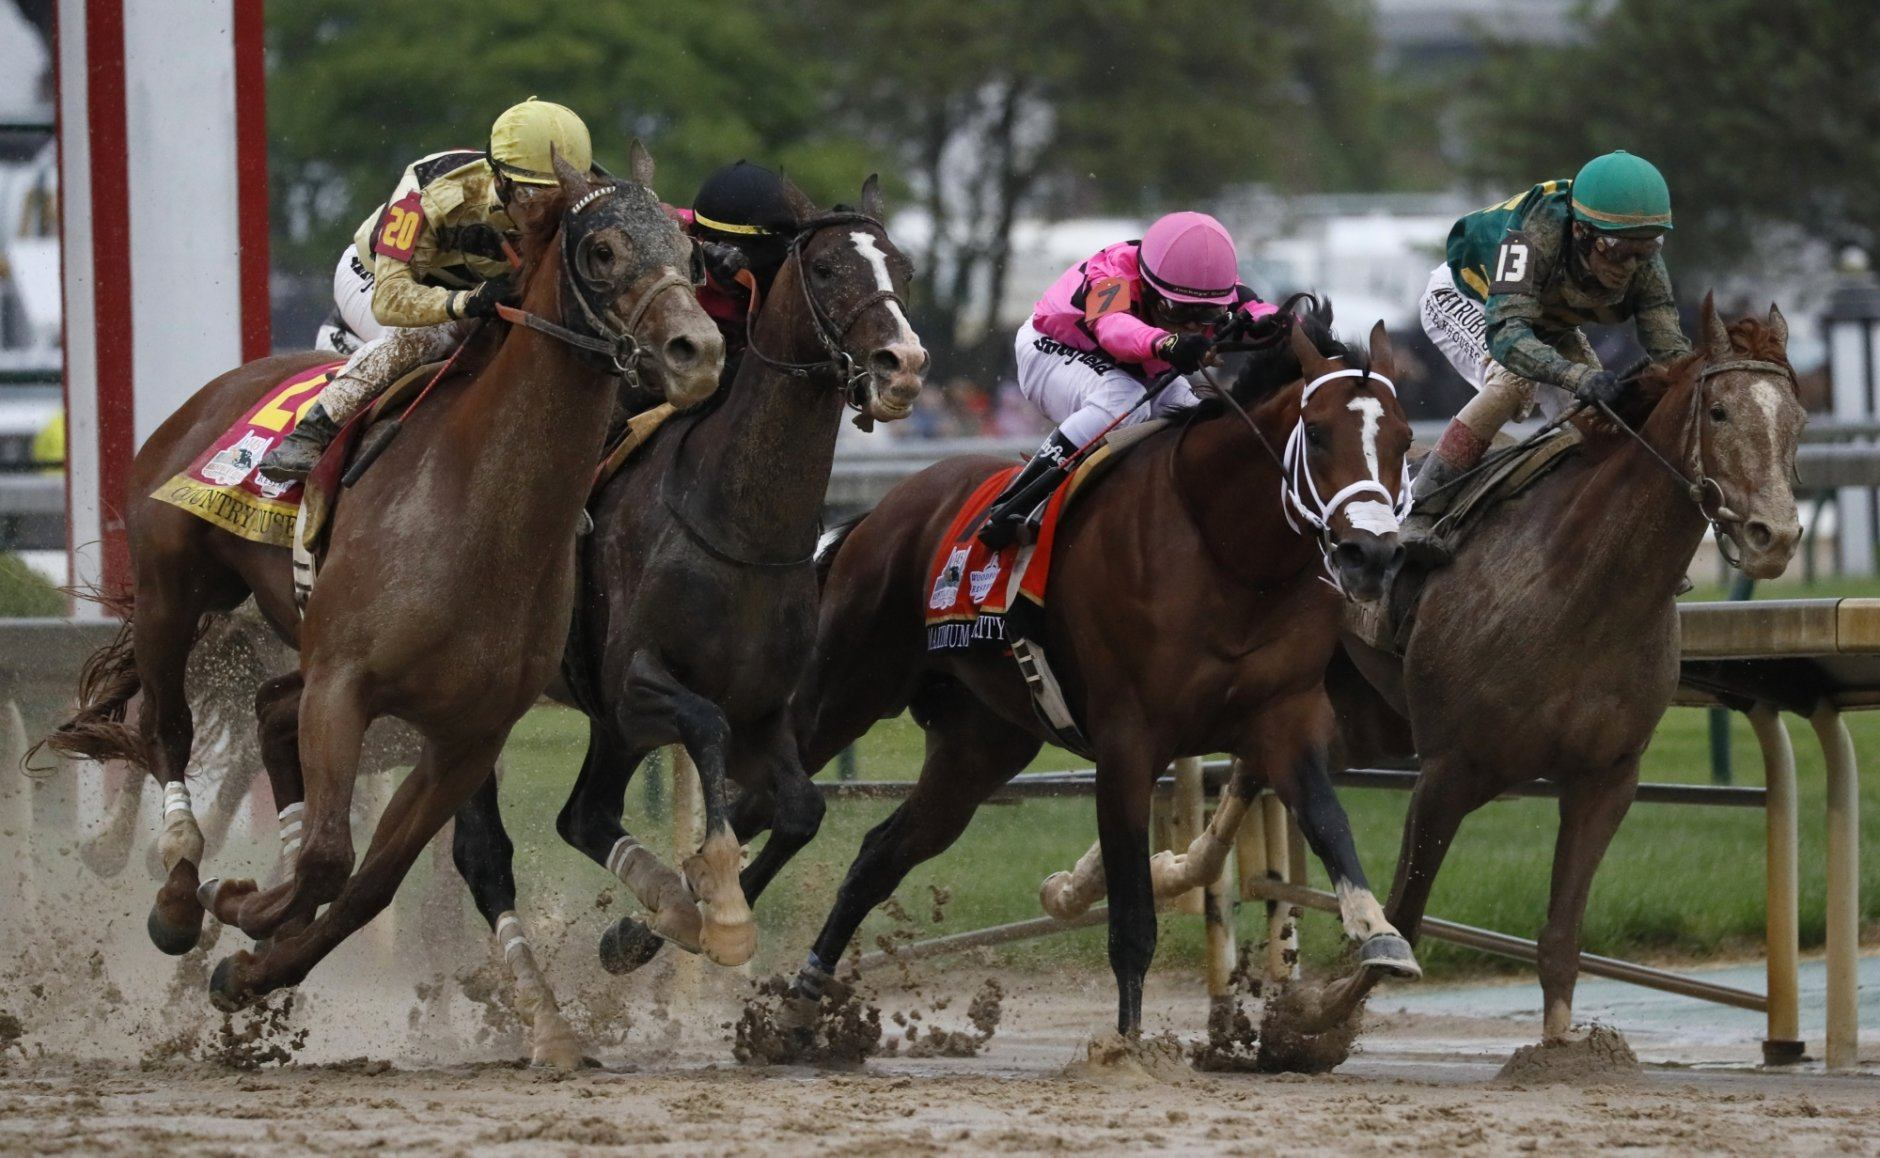 Flavien Prat on Country House, left, races against Luis Saez on Maximum Security, second from right, during the 145th running of the Kentucky Derby horse race at Churchill Downs Saturday, May 4, 2019, in Louisville, Ky. Maximum Security was disqualified and Country House won the race. (AP Photo/John Minchillo)